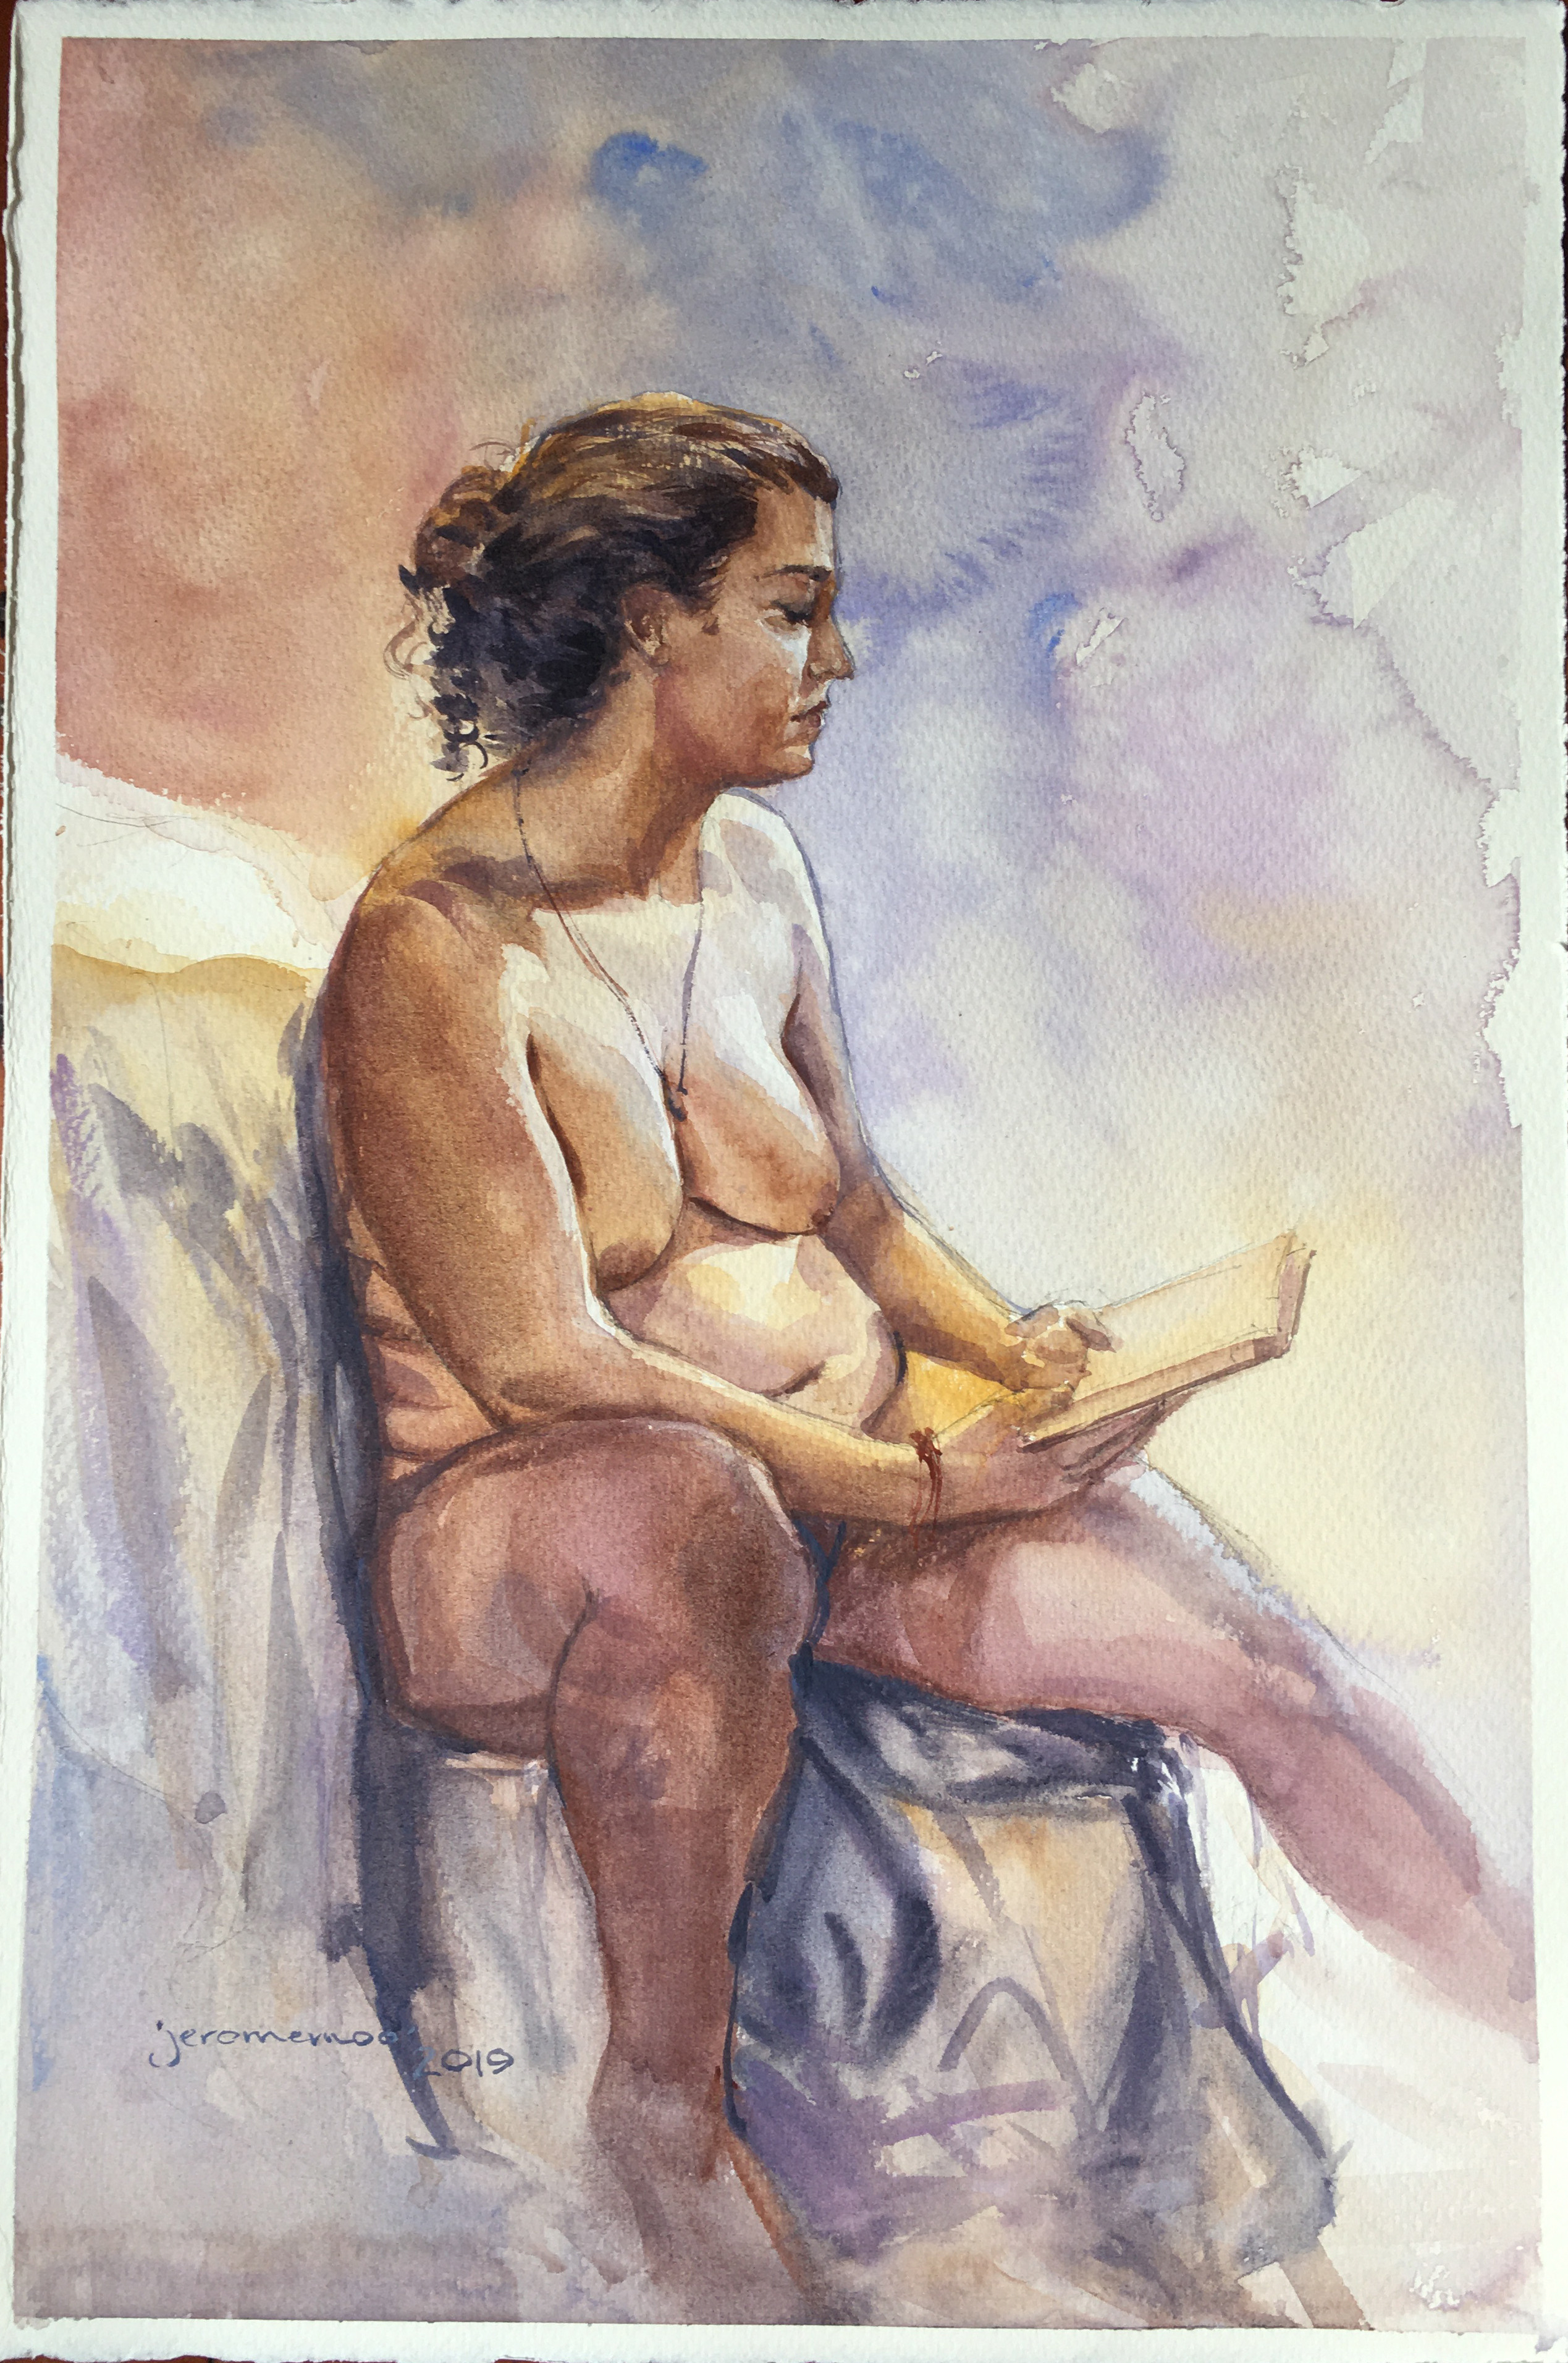 Long Pose Life Drawing of Marika  Watercolour on 28x38cm 425gsm Rough Saunders Waterford Watercolour Paper